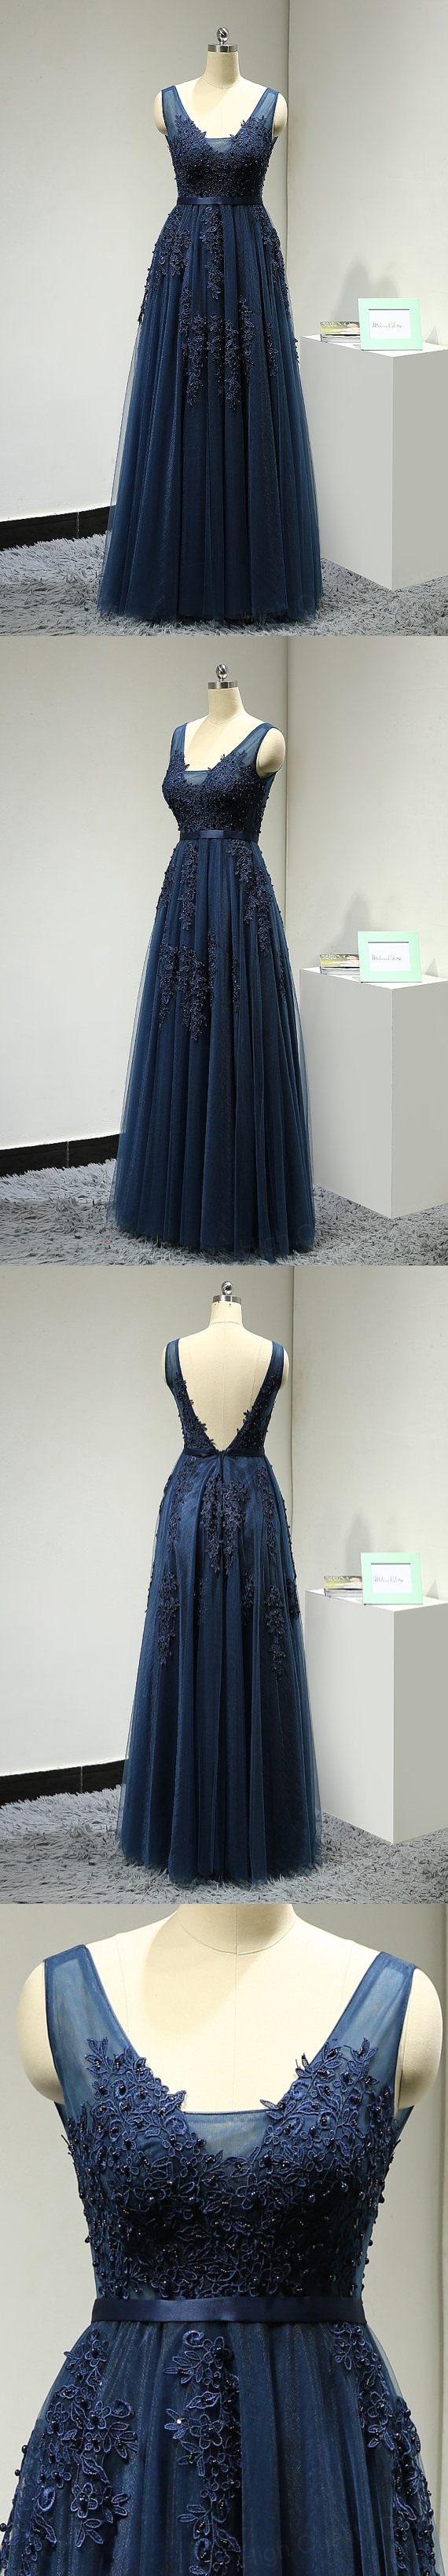 Sexy backless dark navy evening dresses v neck lace appliques tulle